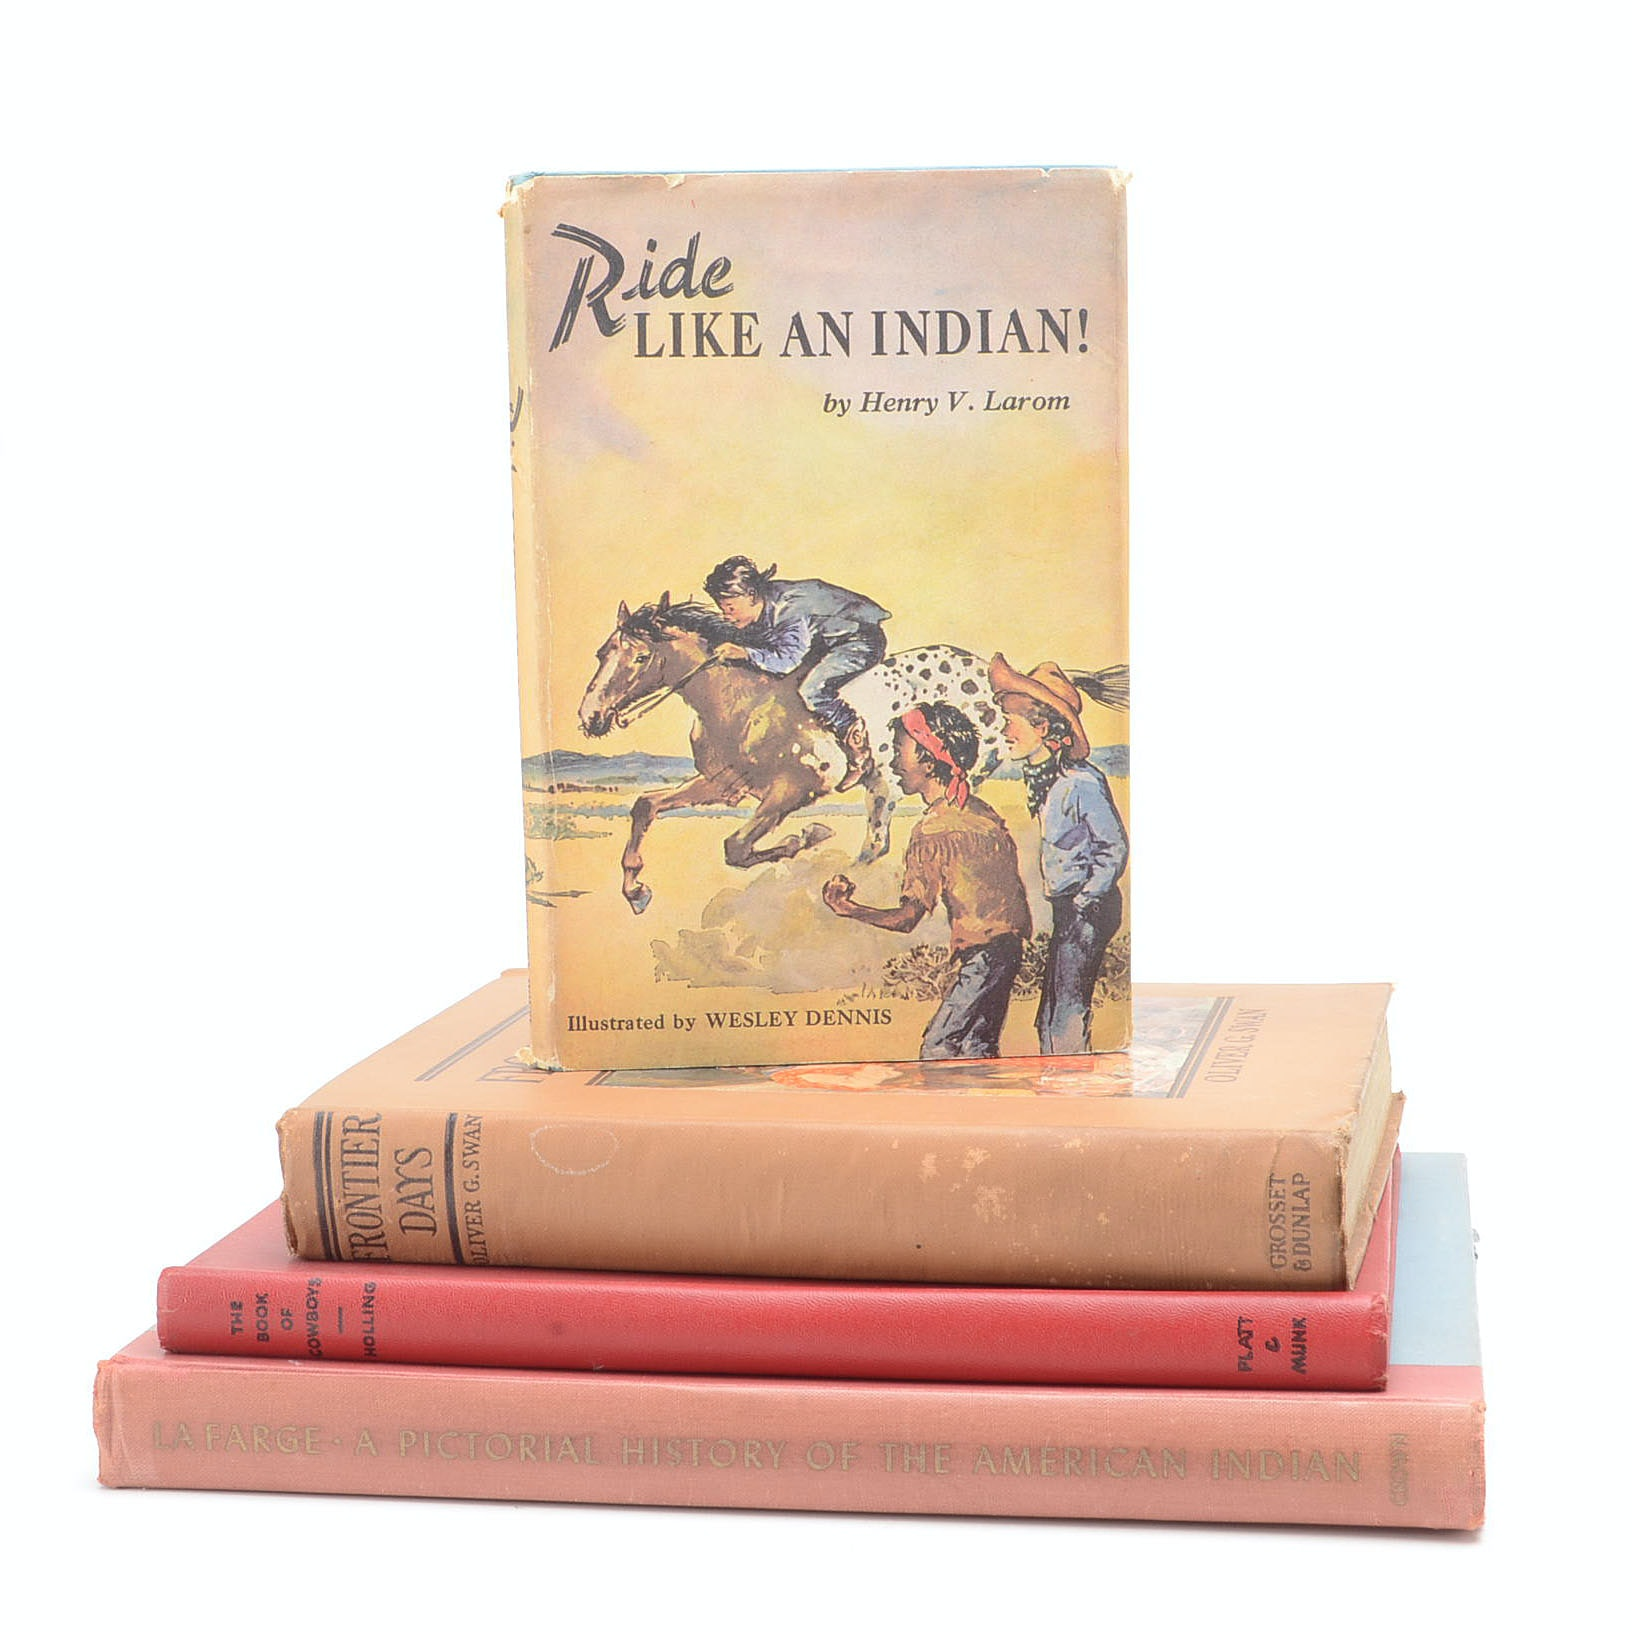 Collection of Vintage Books about the American Frontier